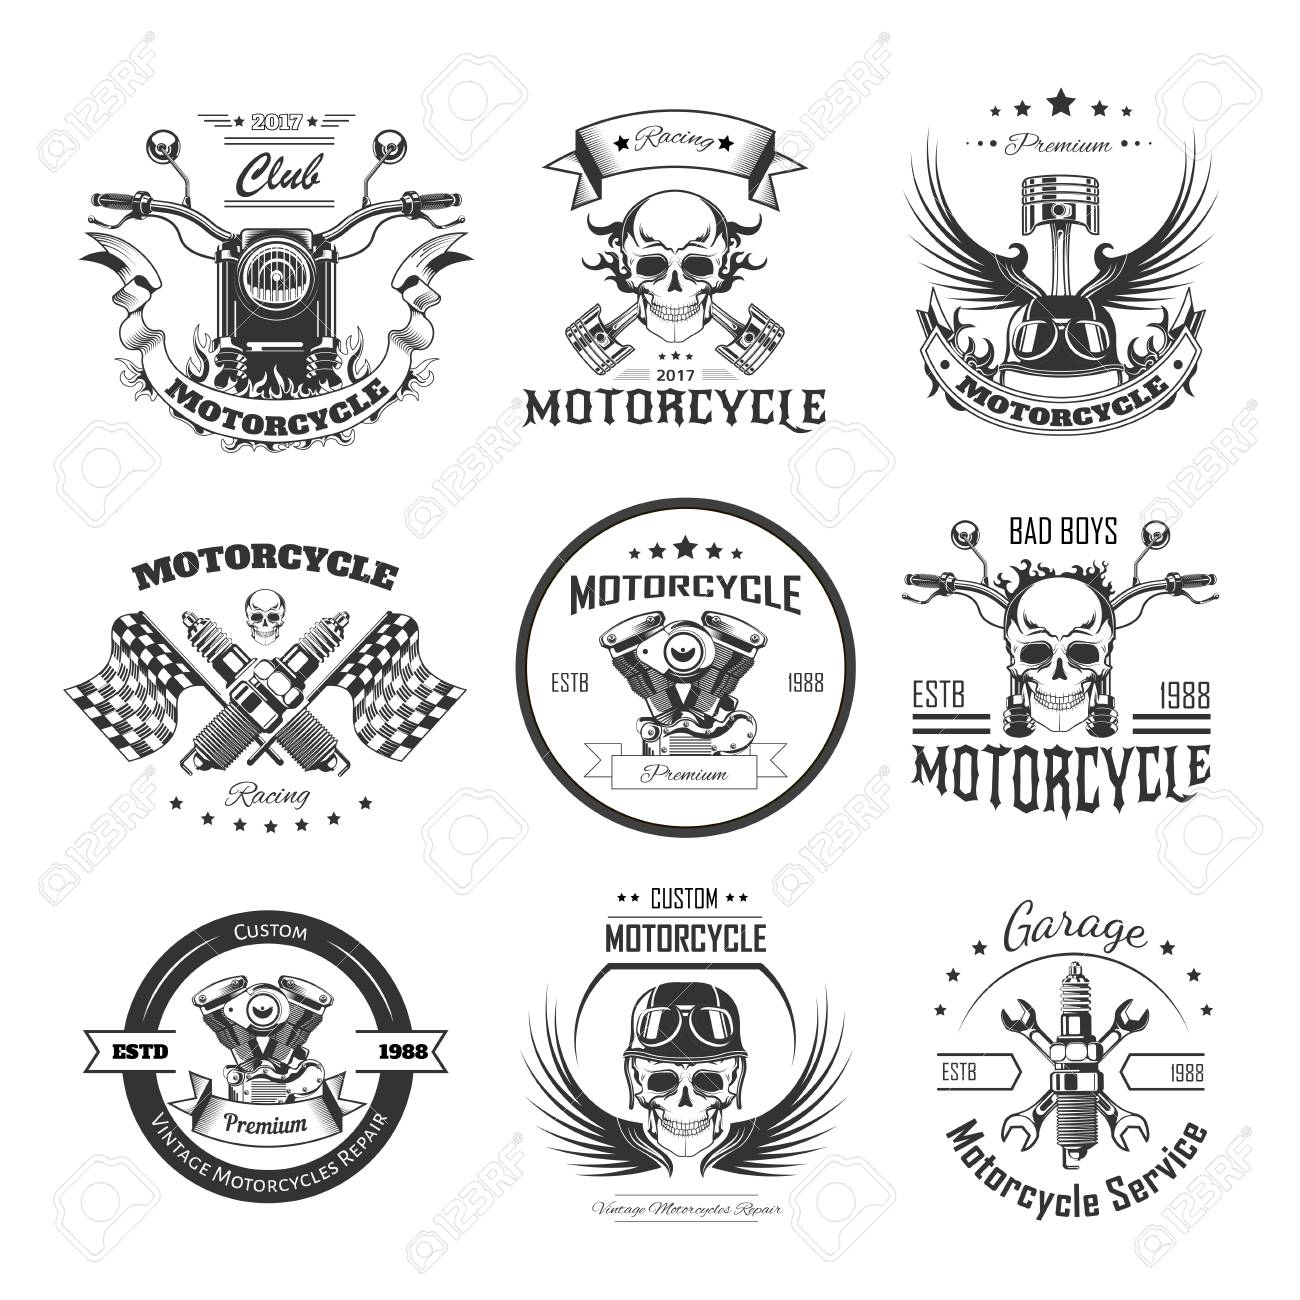 Motorcycle Or Bikers Club Logo Templates Royalty Free Cliparts ...